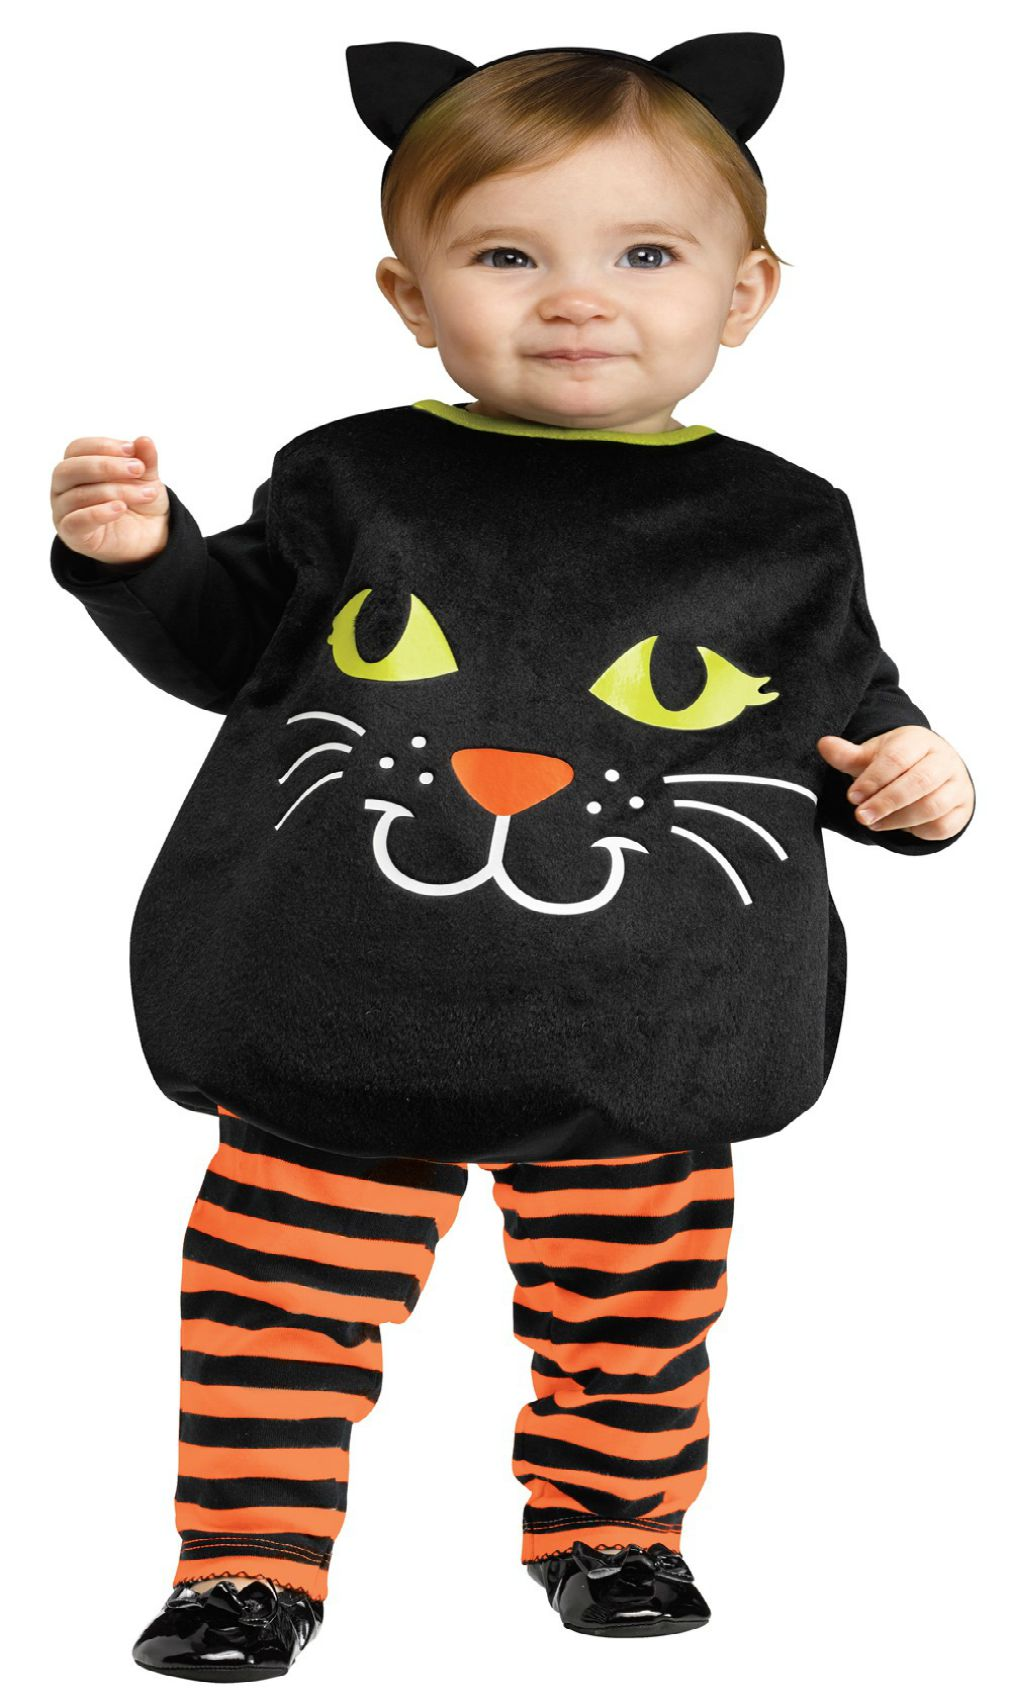 Baby Girls Itty Bitty Kitty Infant Cat Costume  sc 1 st  Meningrey & Baby Girl Cat Costume - Meningrey